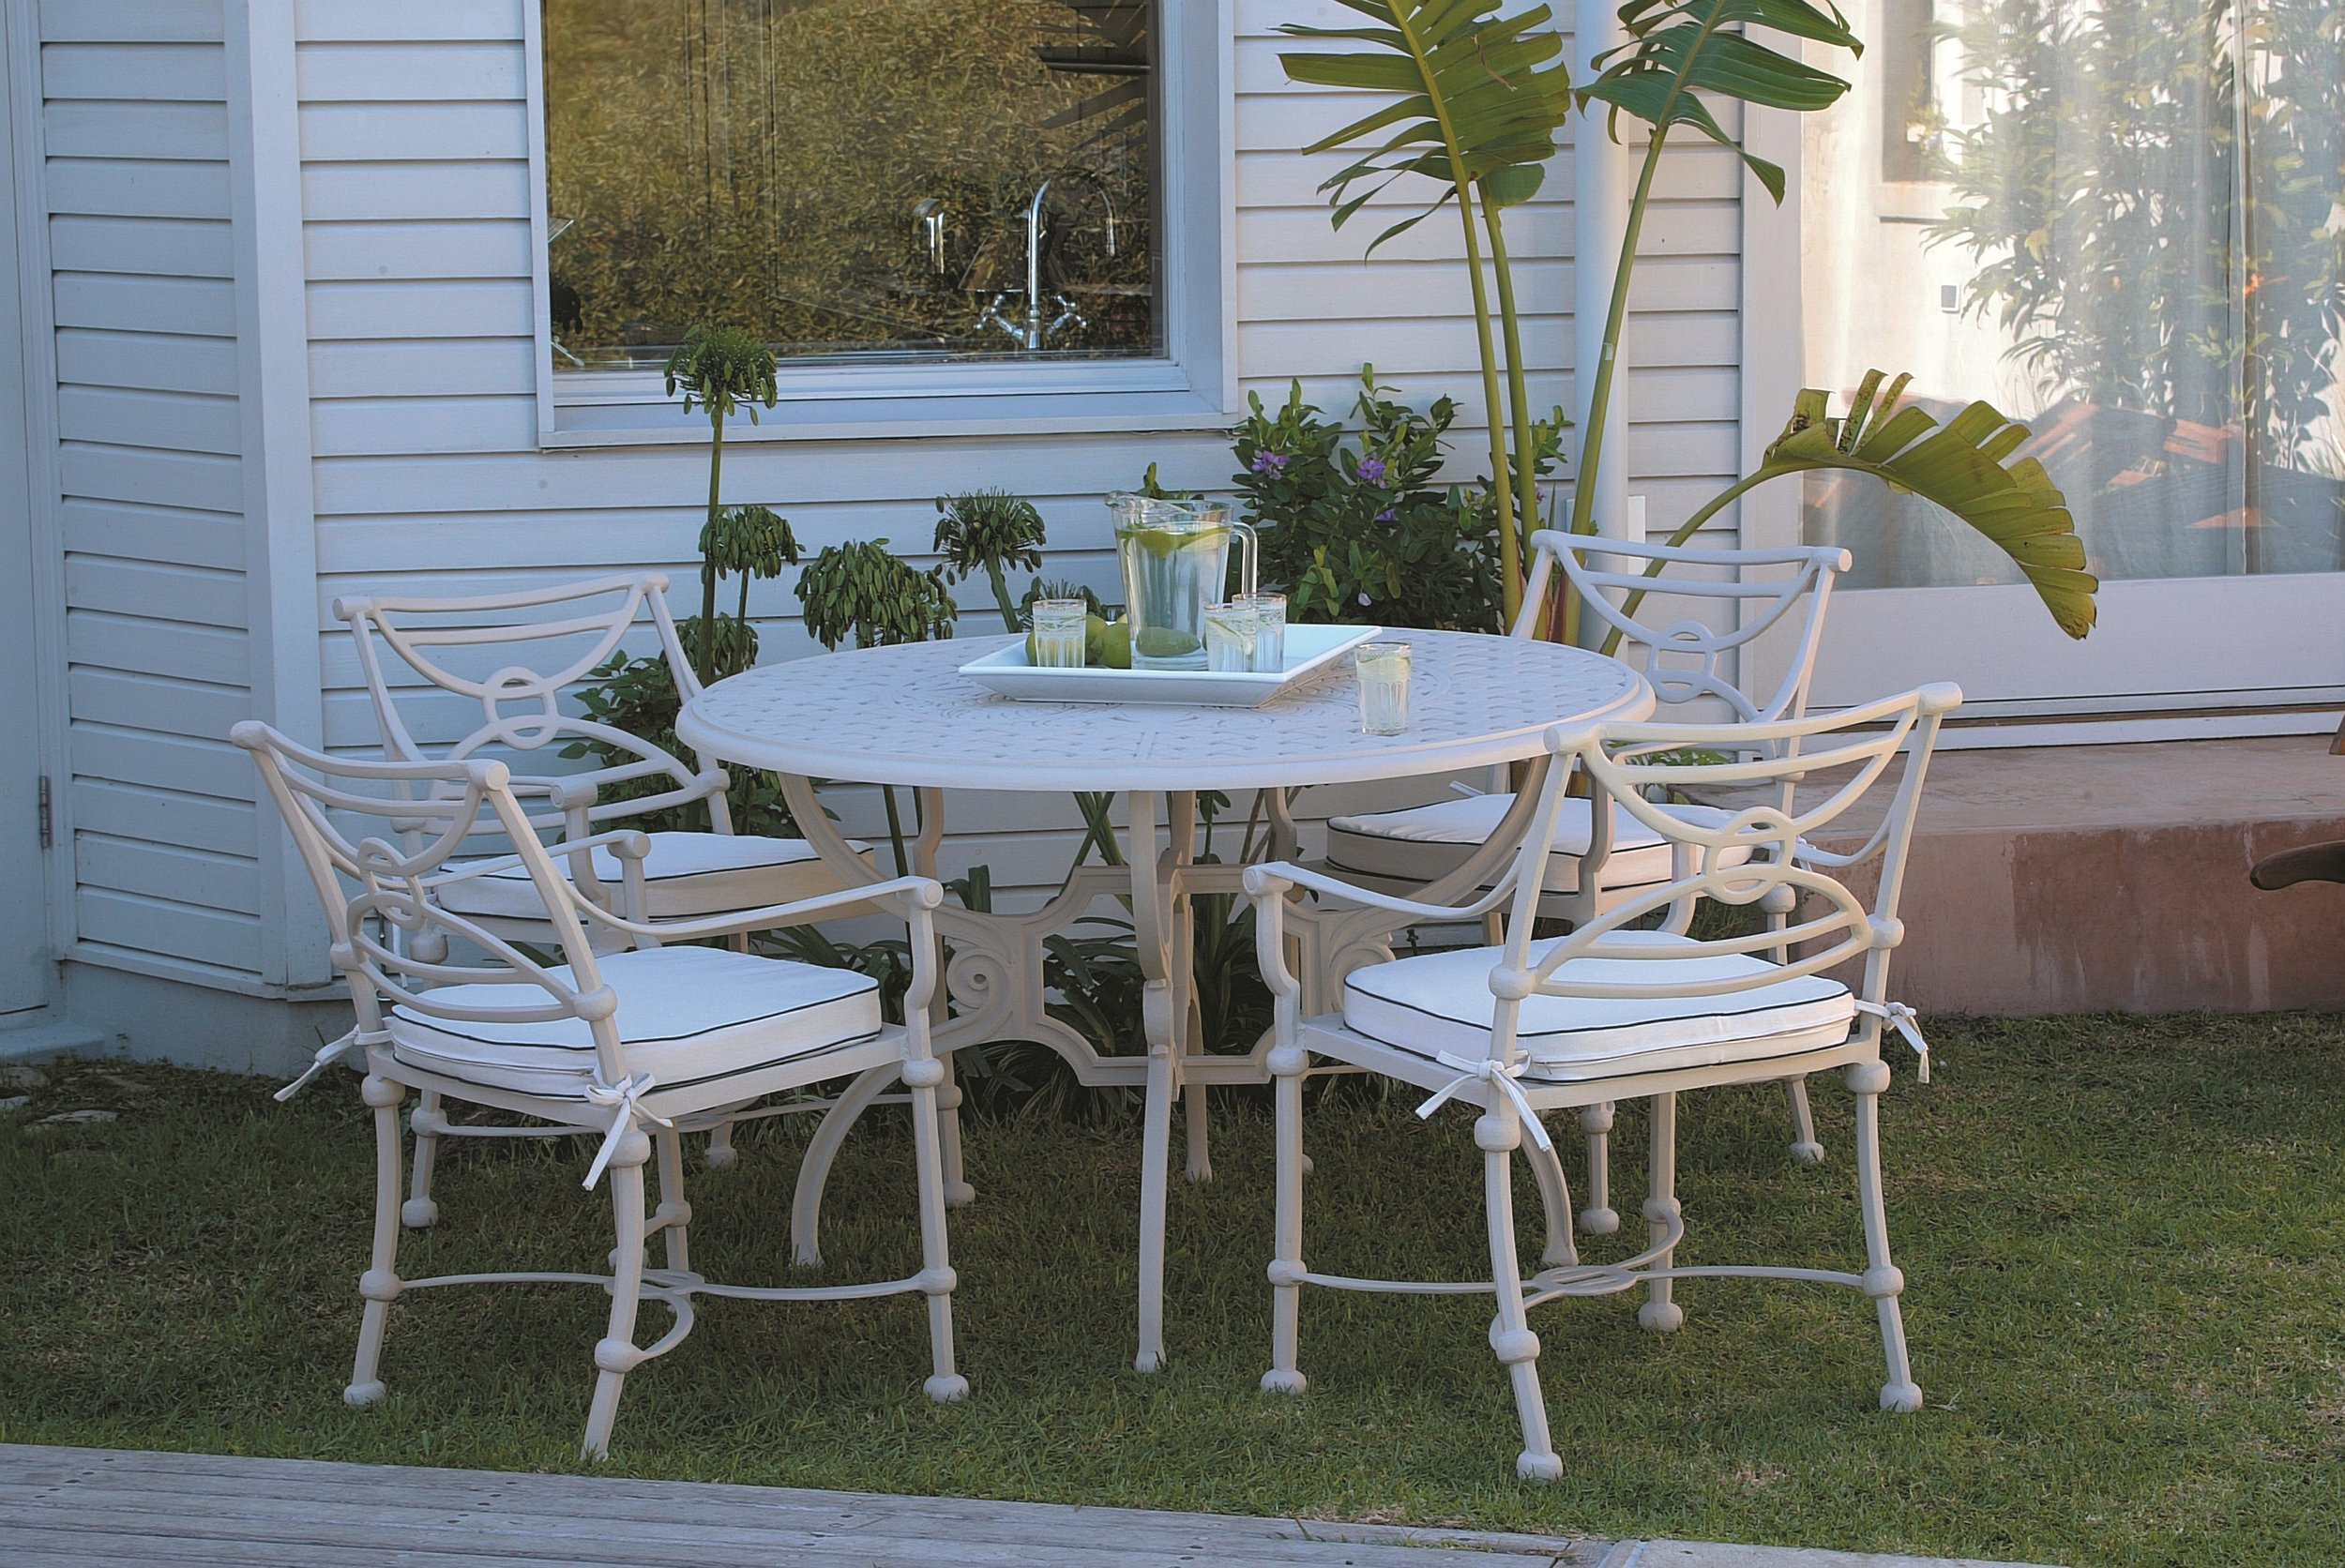 Soriano 4 seater table and Baxter carvers